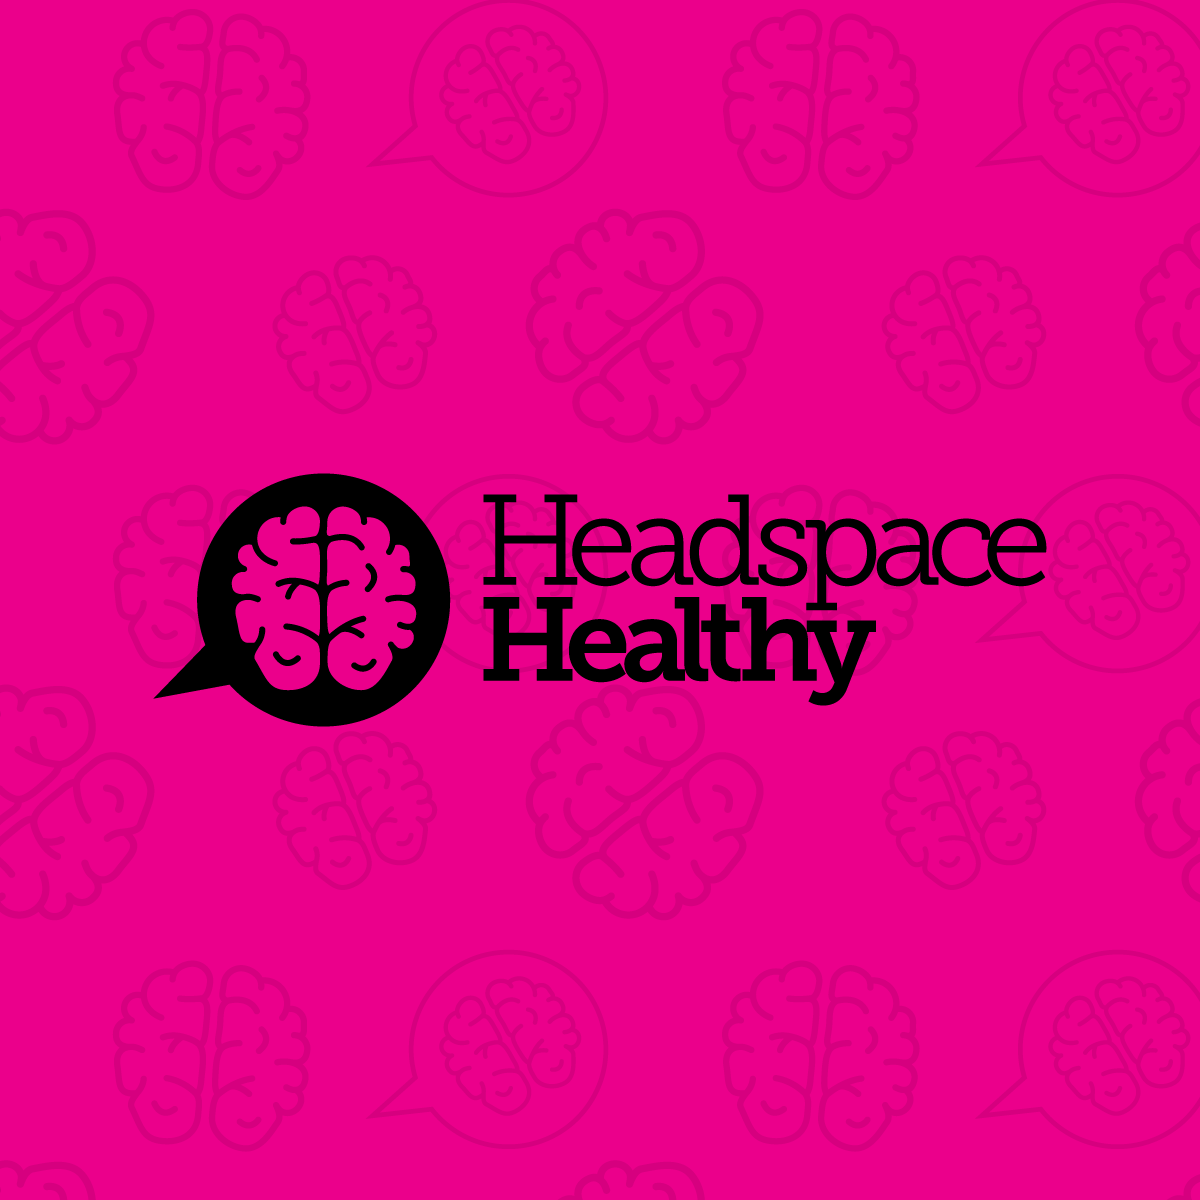 Headspace Healthy